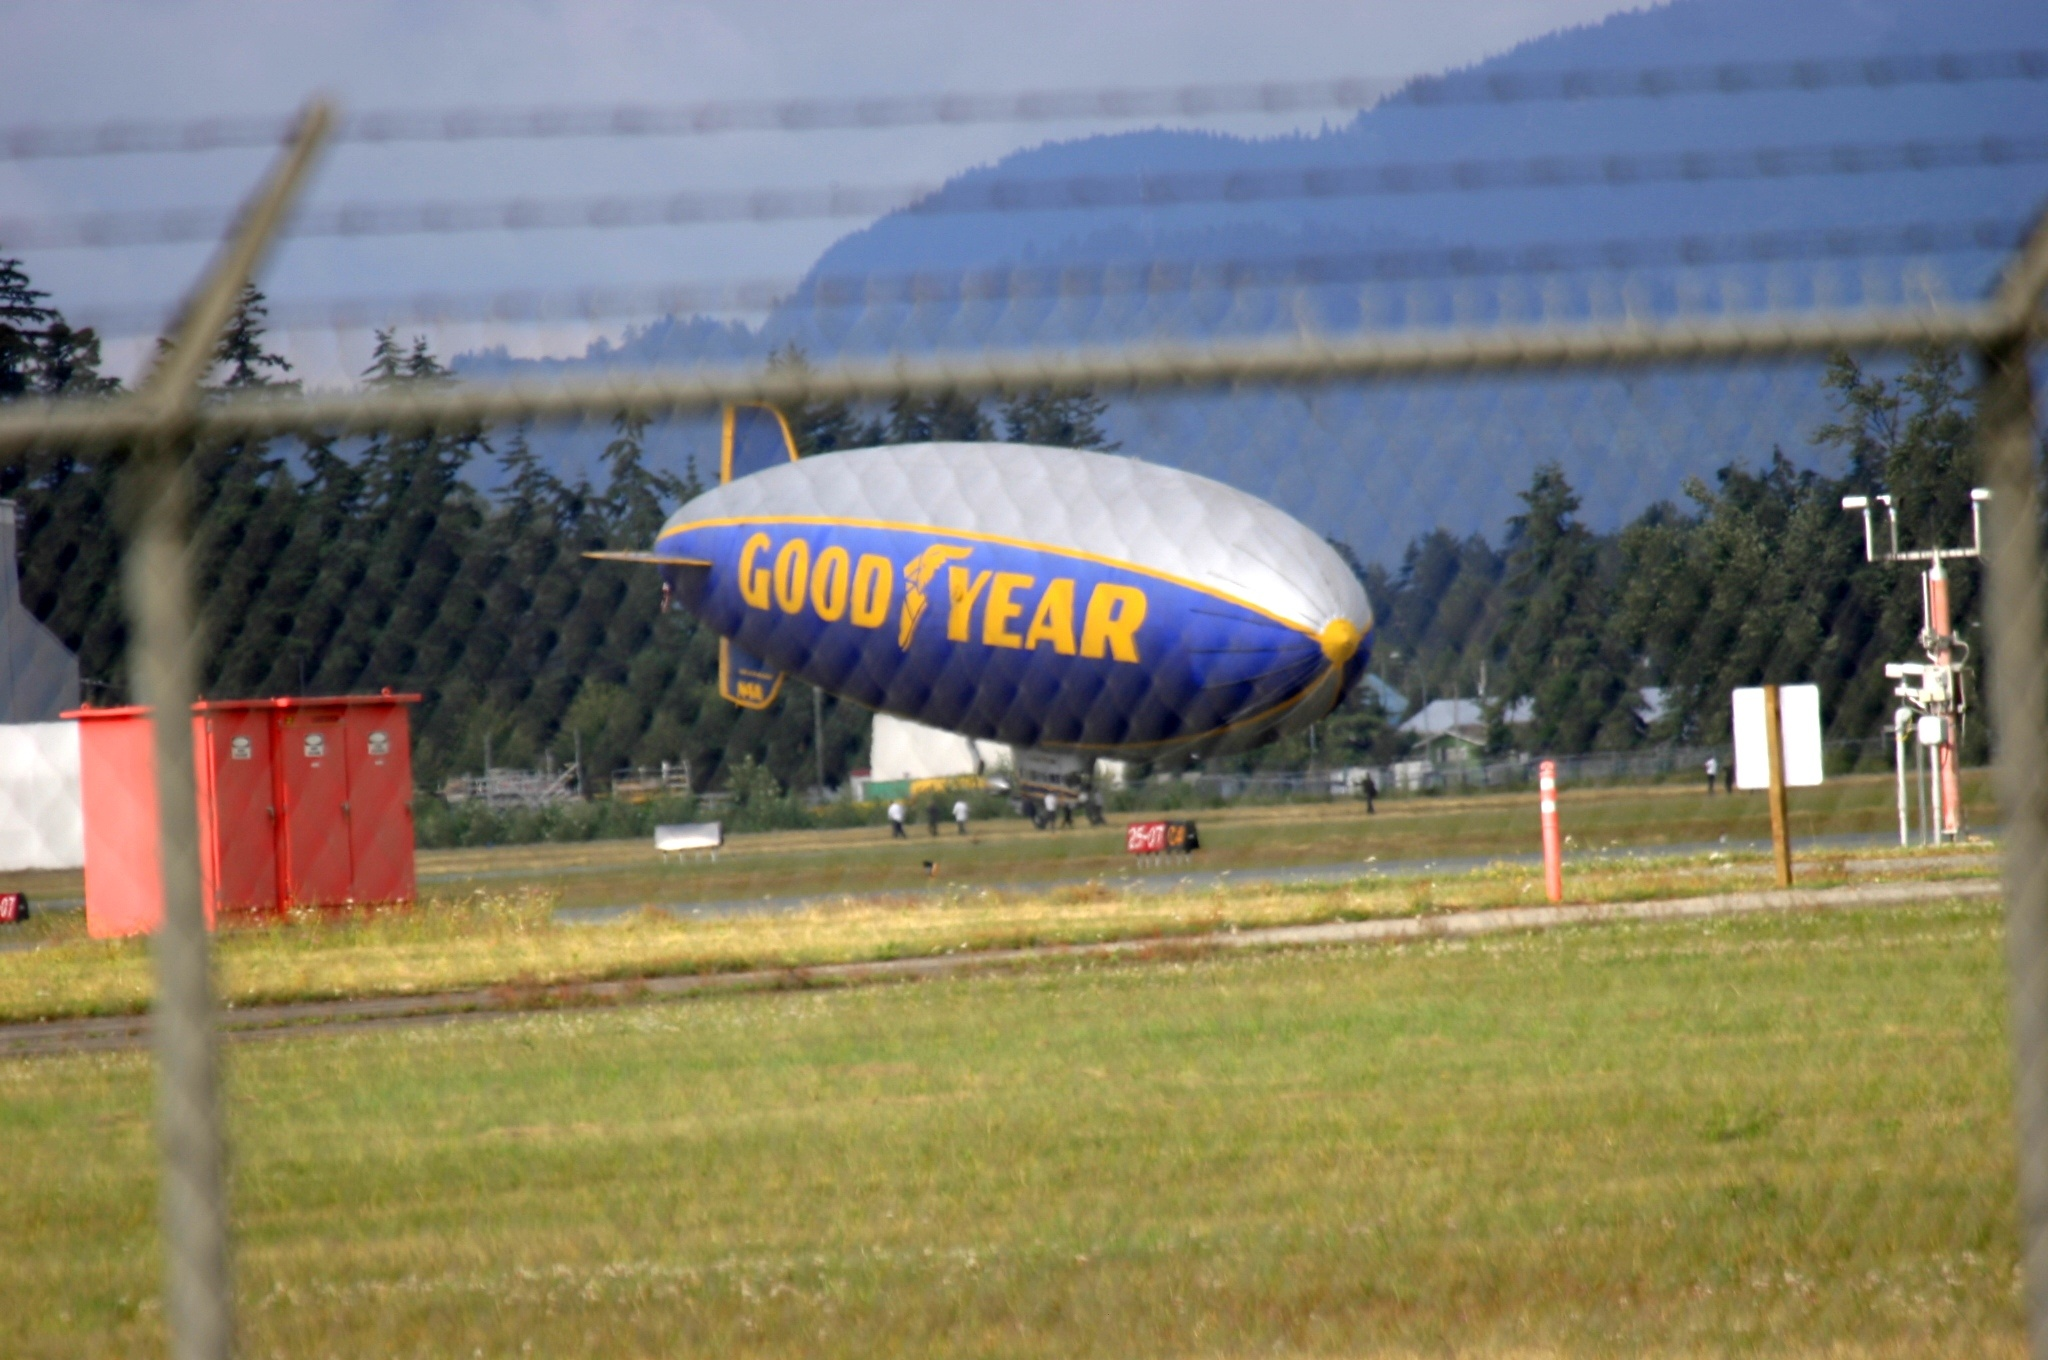 The Blimp has Landed. by henrywall63